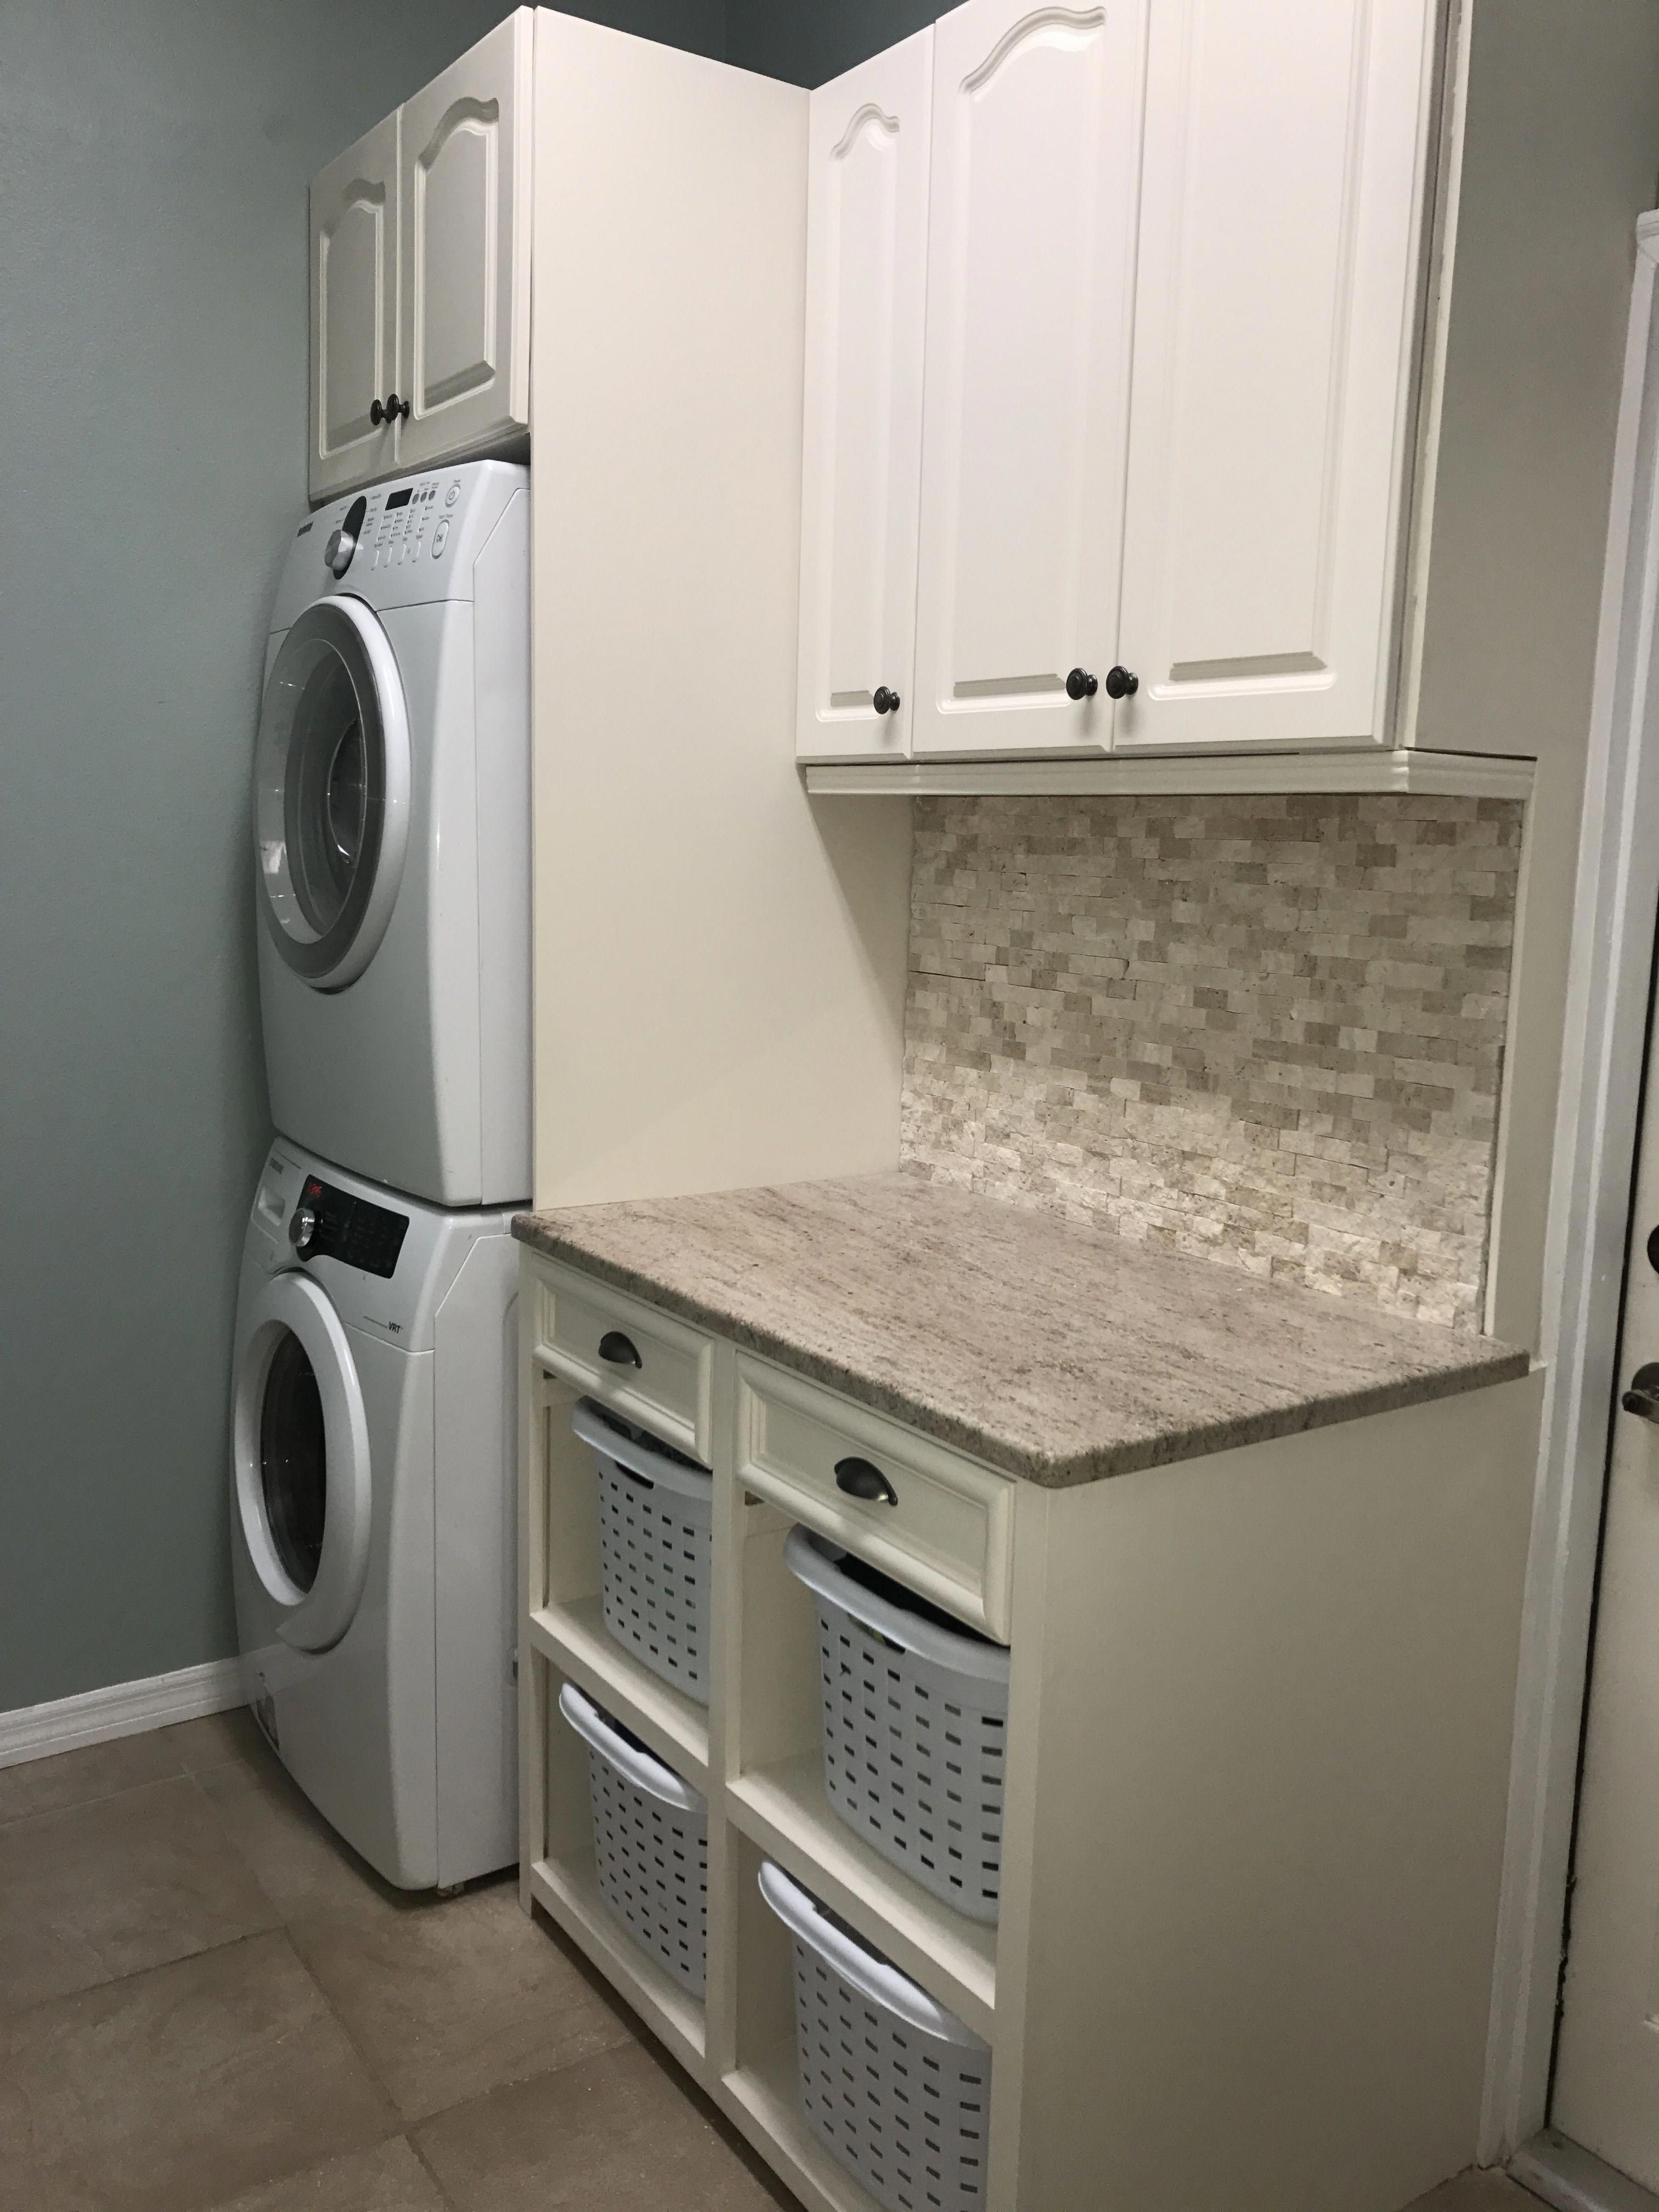 Find Out Even More Info On Laundry Room Storage Diy Cabinets